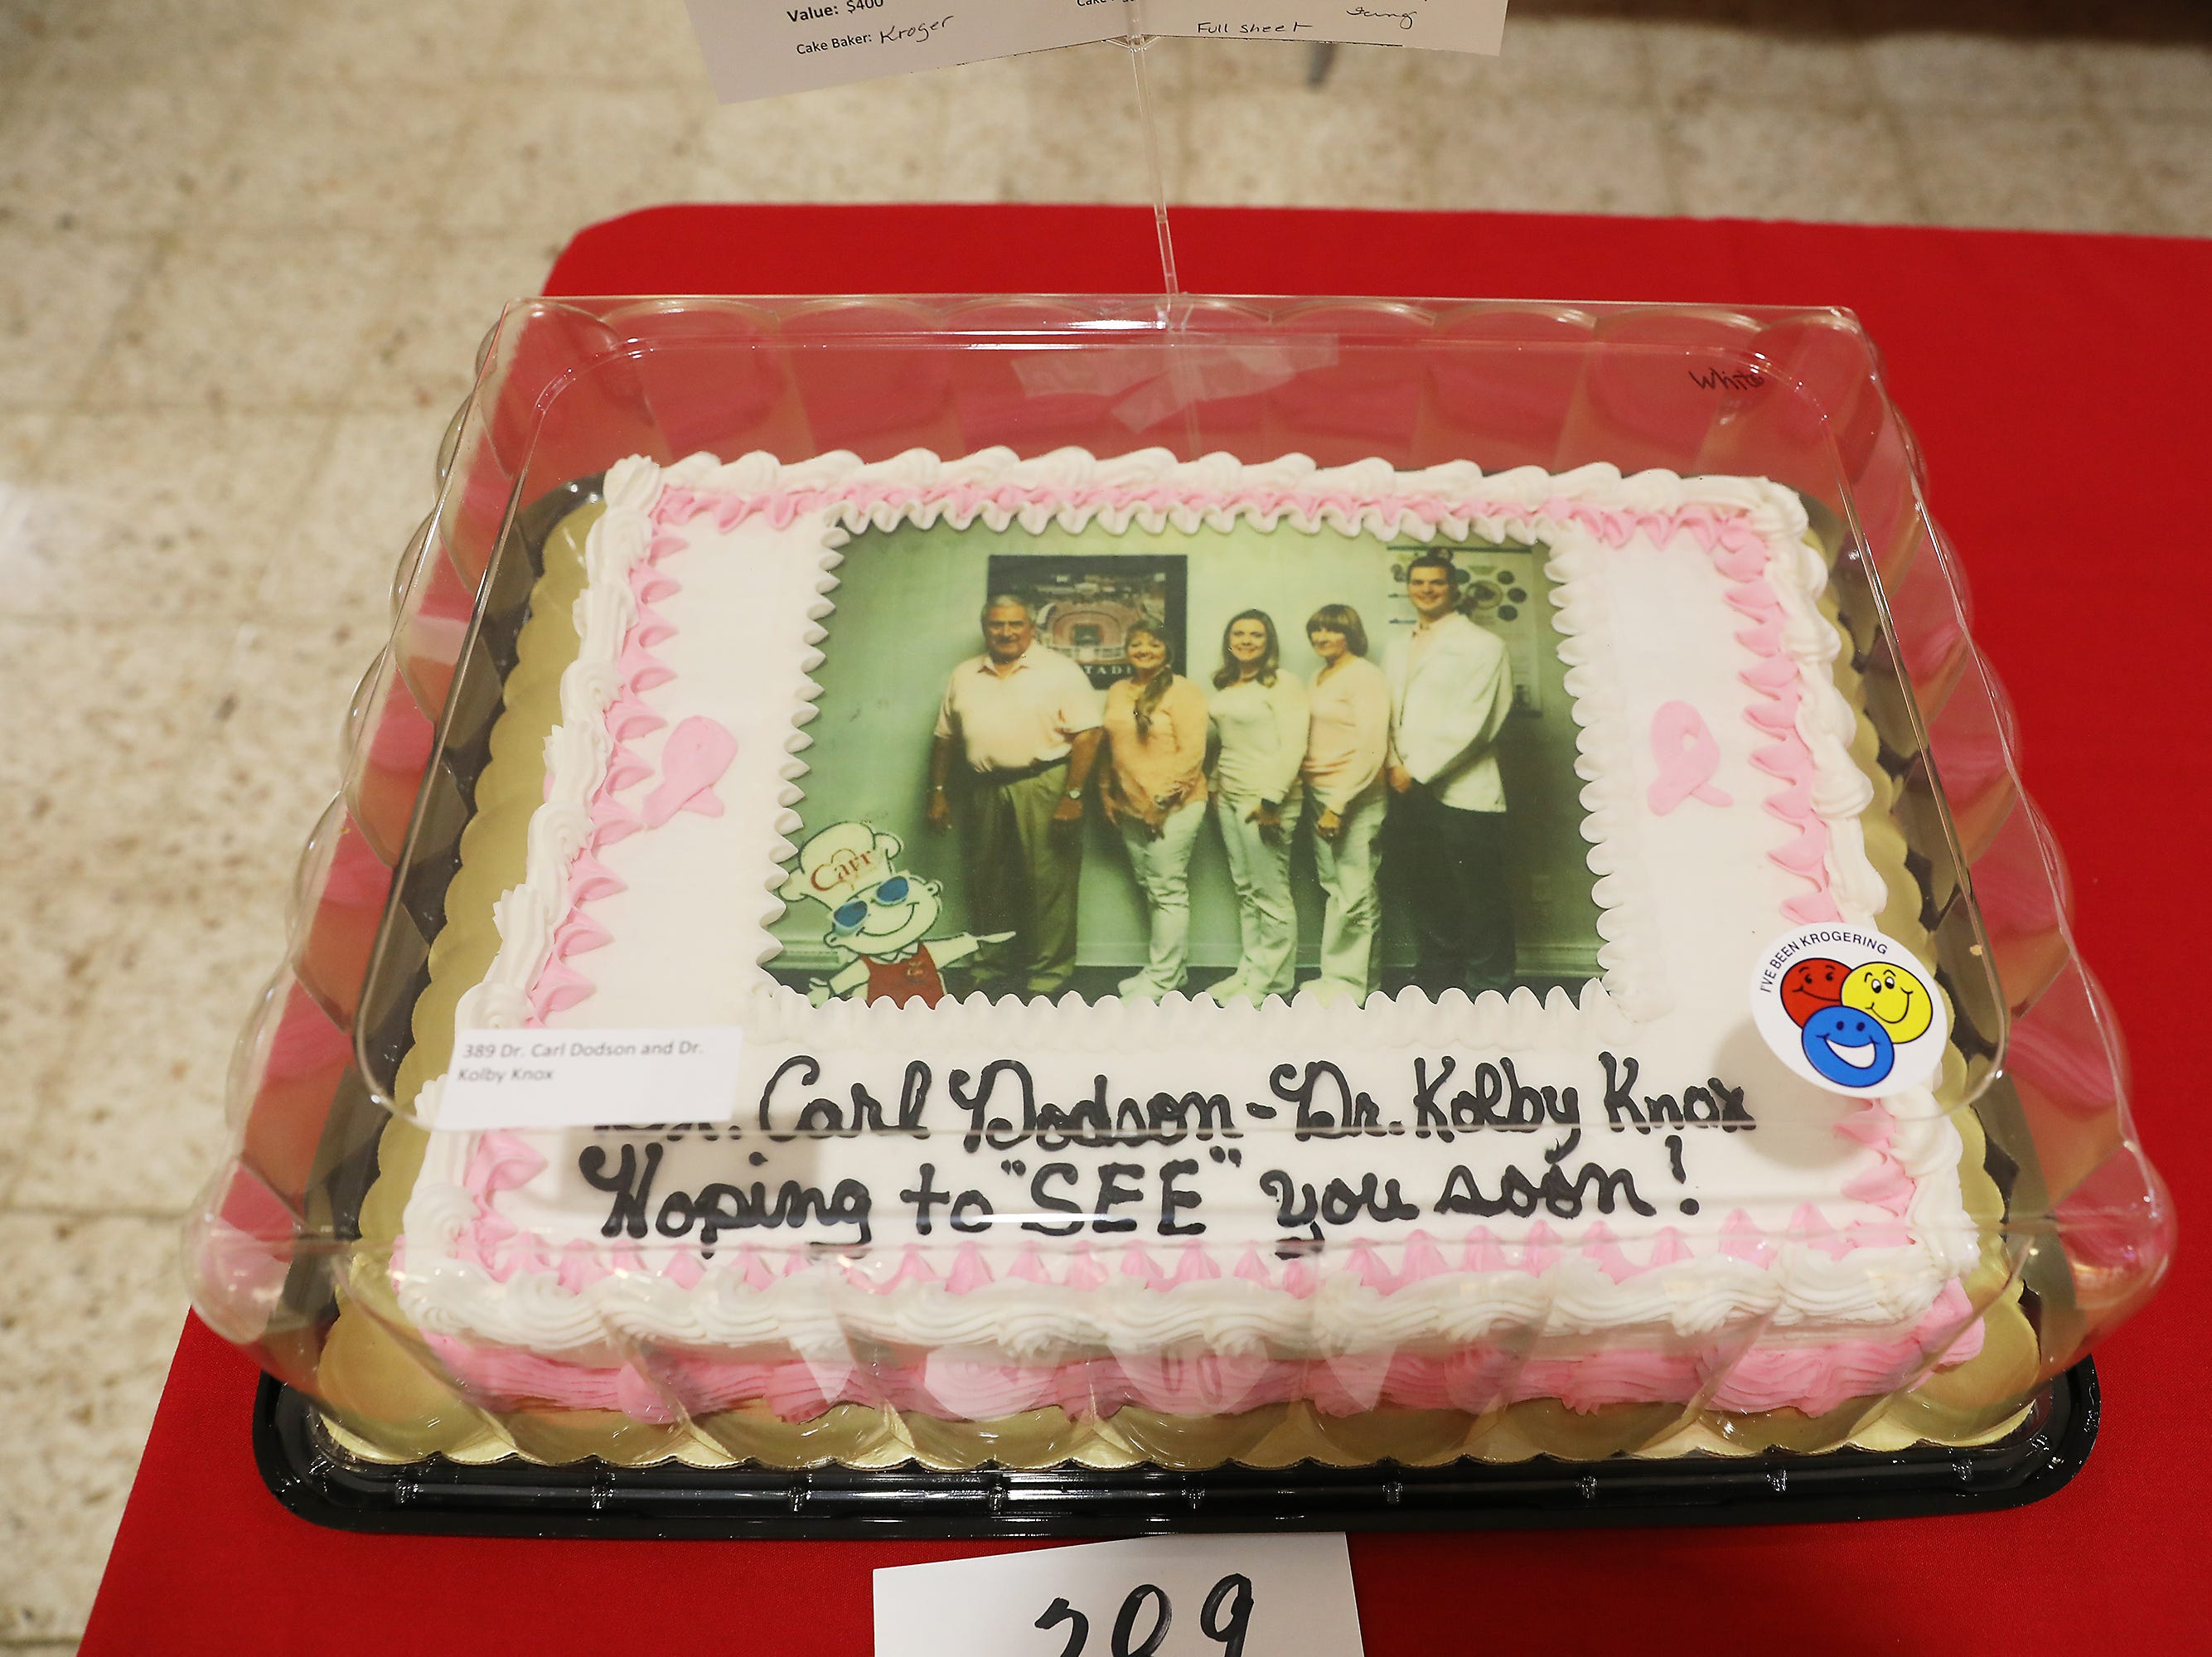 4:45 P.M. Friday cake 389 Dr. Carl Dodson and Dr. Kolby Knox - eye exam, Retinal imaging, $250 for merchandise; $400